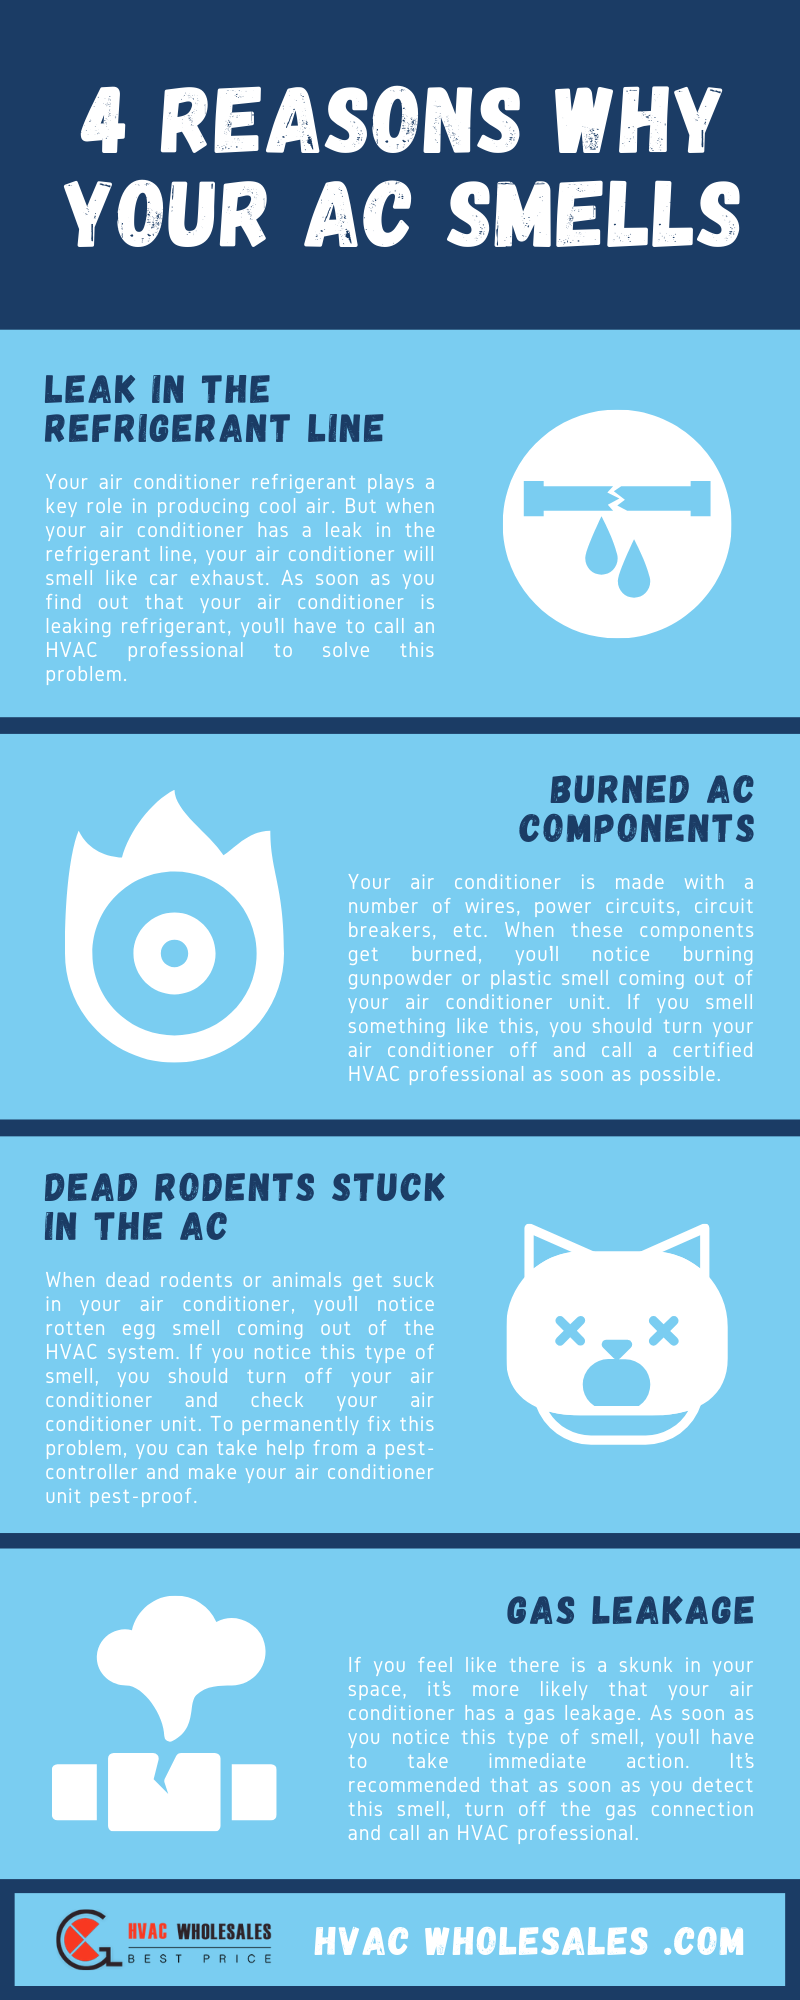 4 Reasons Why Your AC Smells